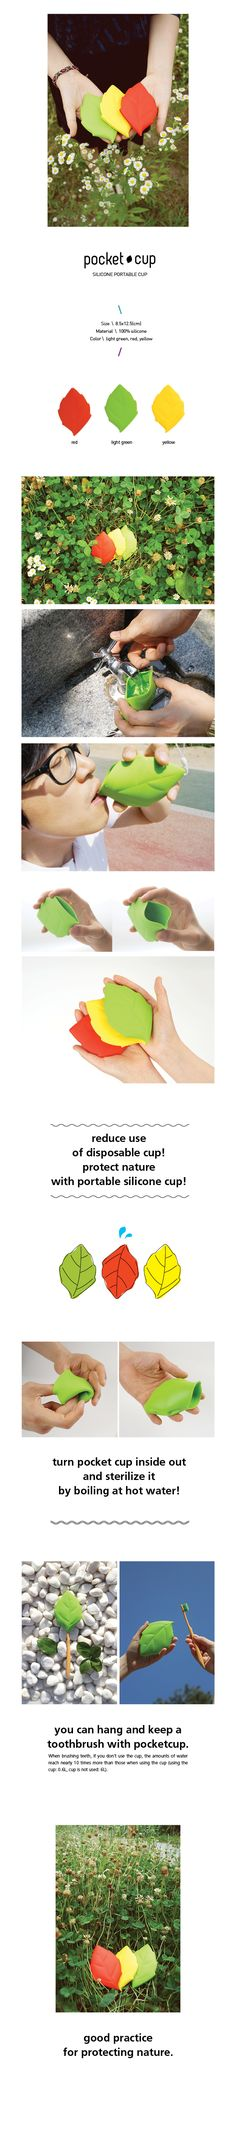 silicone pocket cup - I wouldn't mind a few of these for helping the little ones get drink from the water fountain - And they can be sterilized!